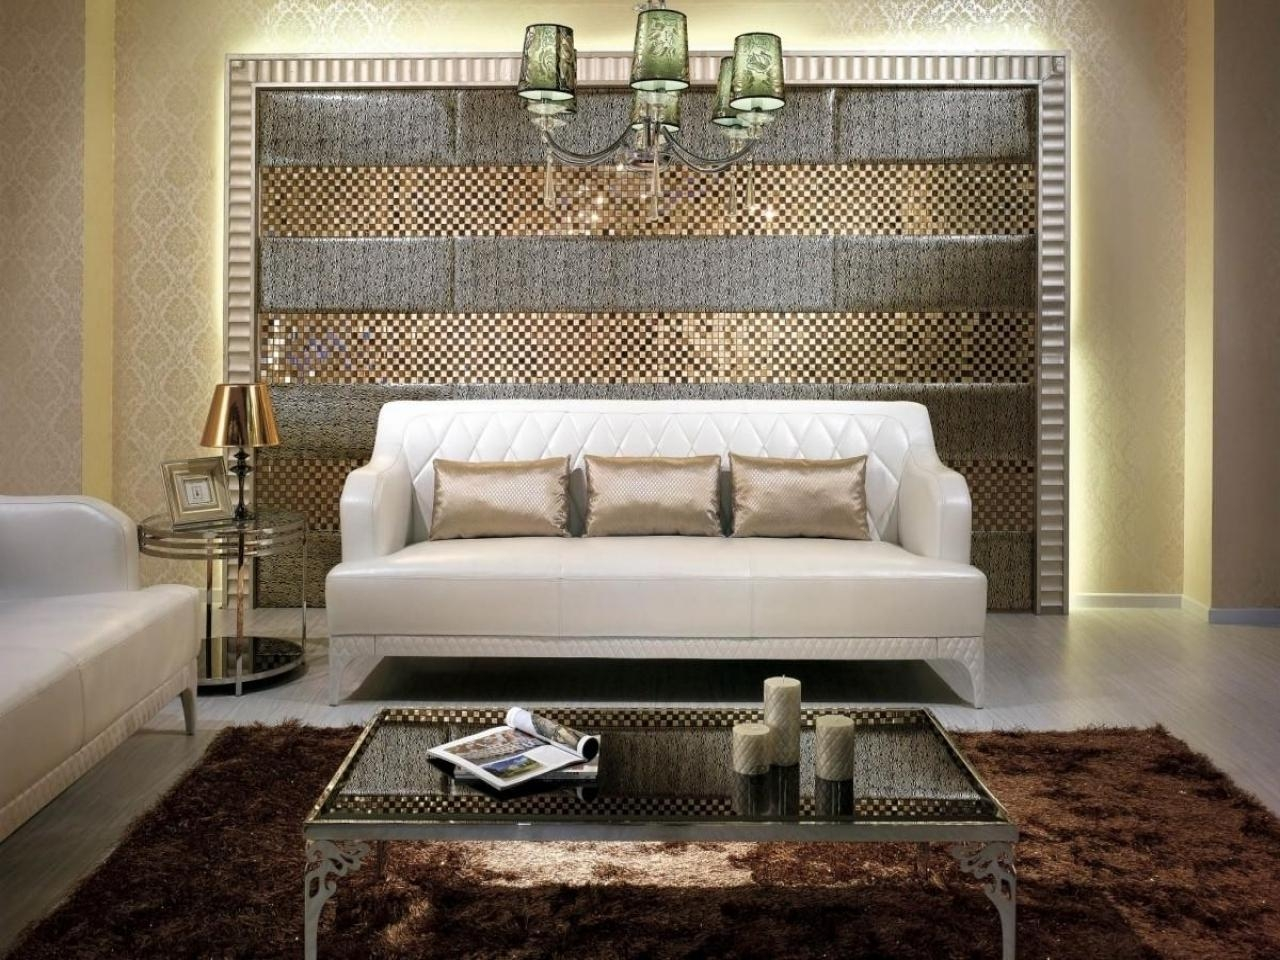 Glamour Wall Art Com With Glamorous ~ Arttogallery Within Glamorous Wall Art (View 8 of 20)